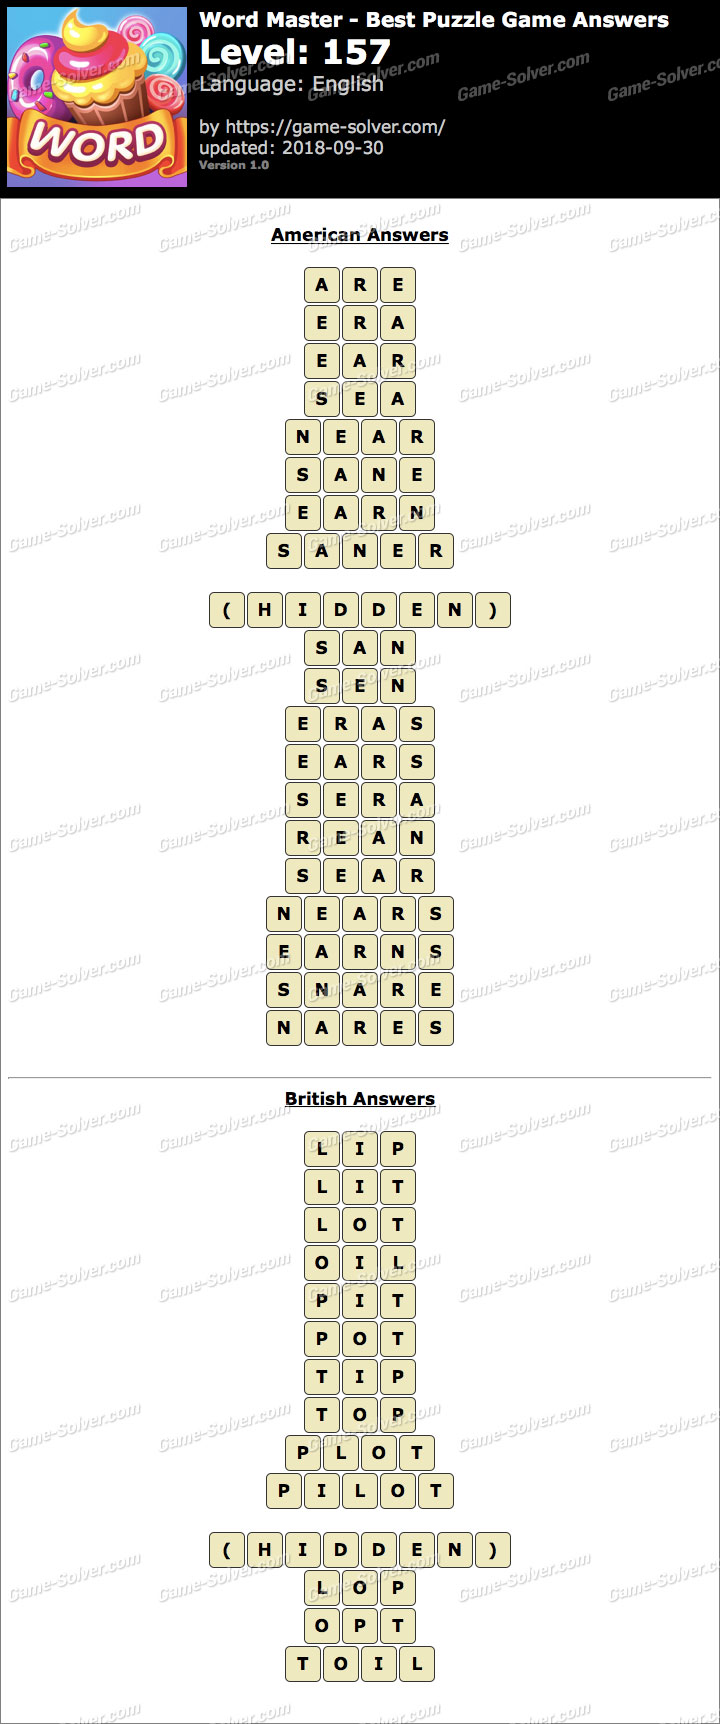 Word Master-Best Puzzle Game Level 157 Answers